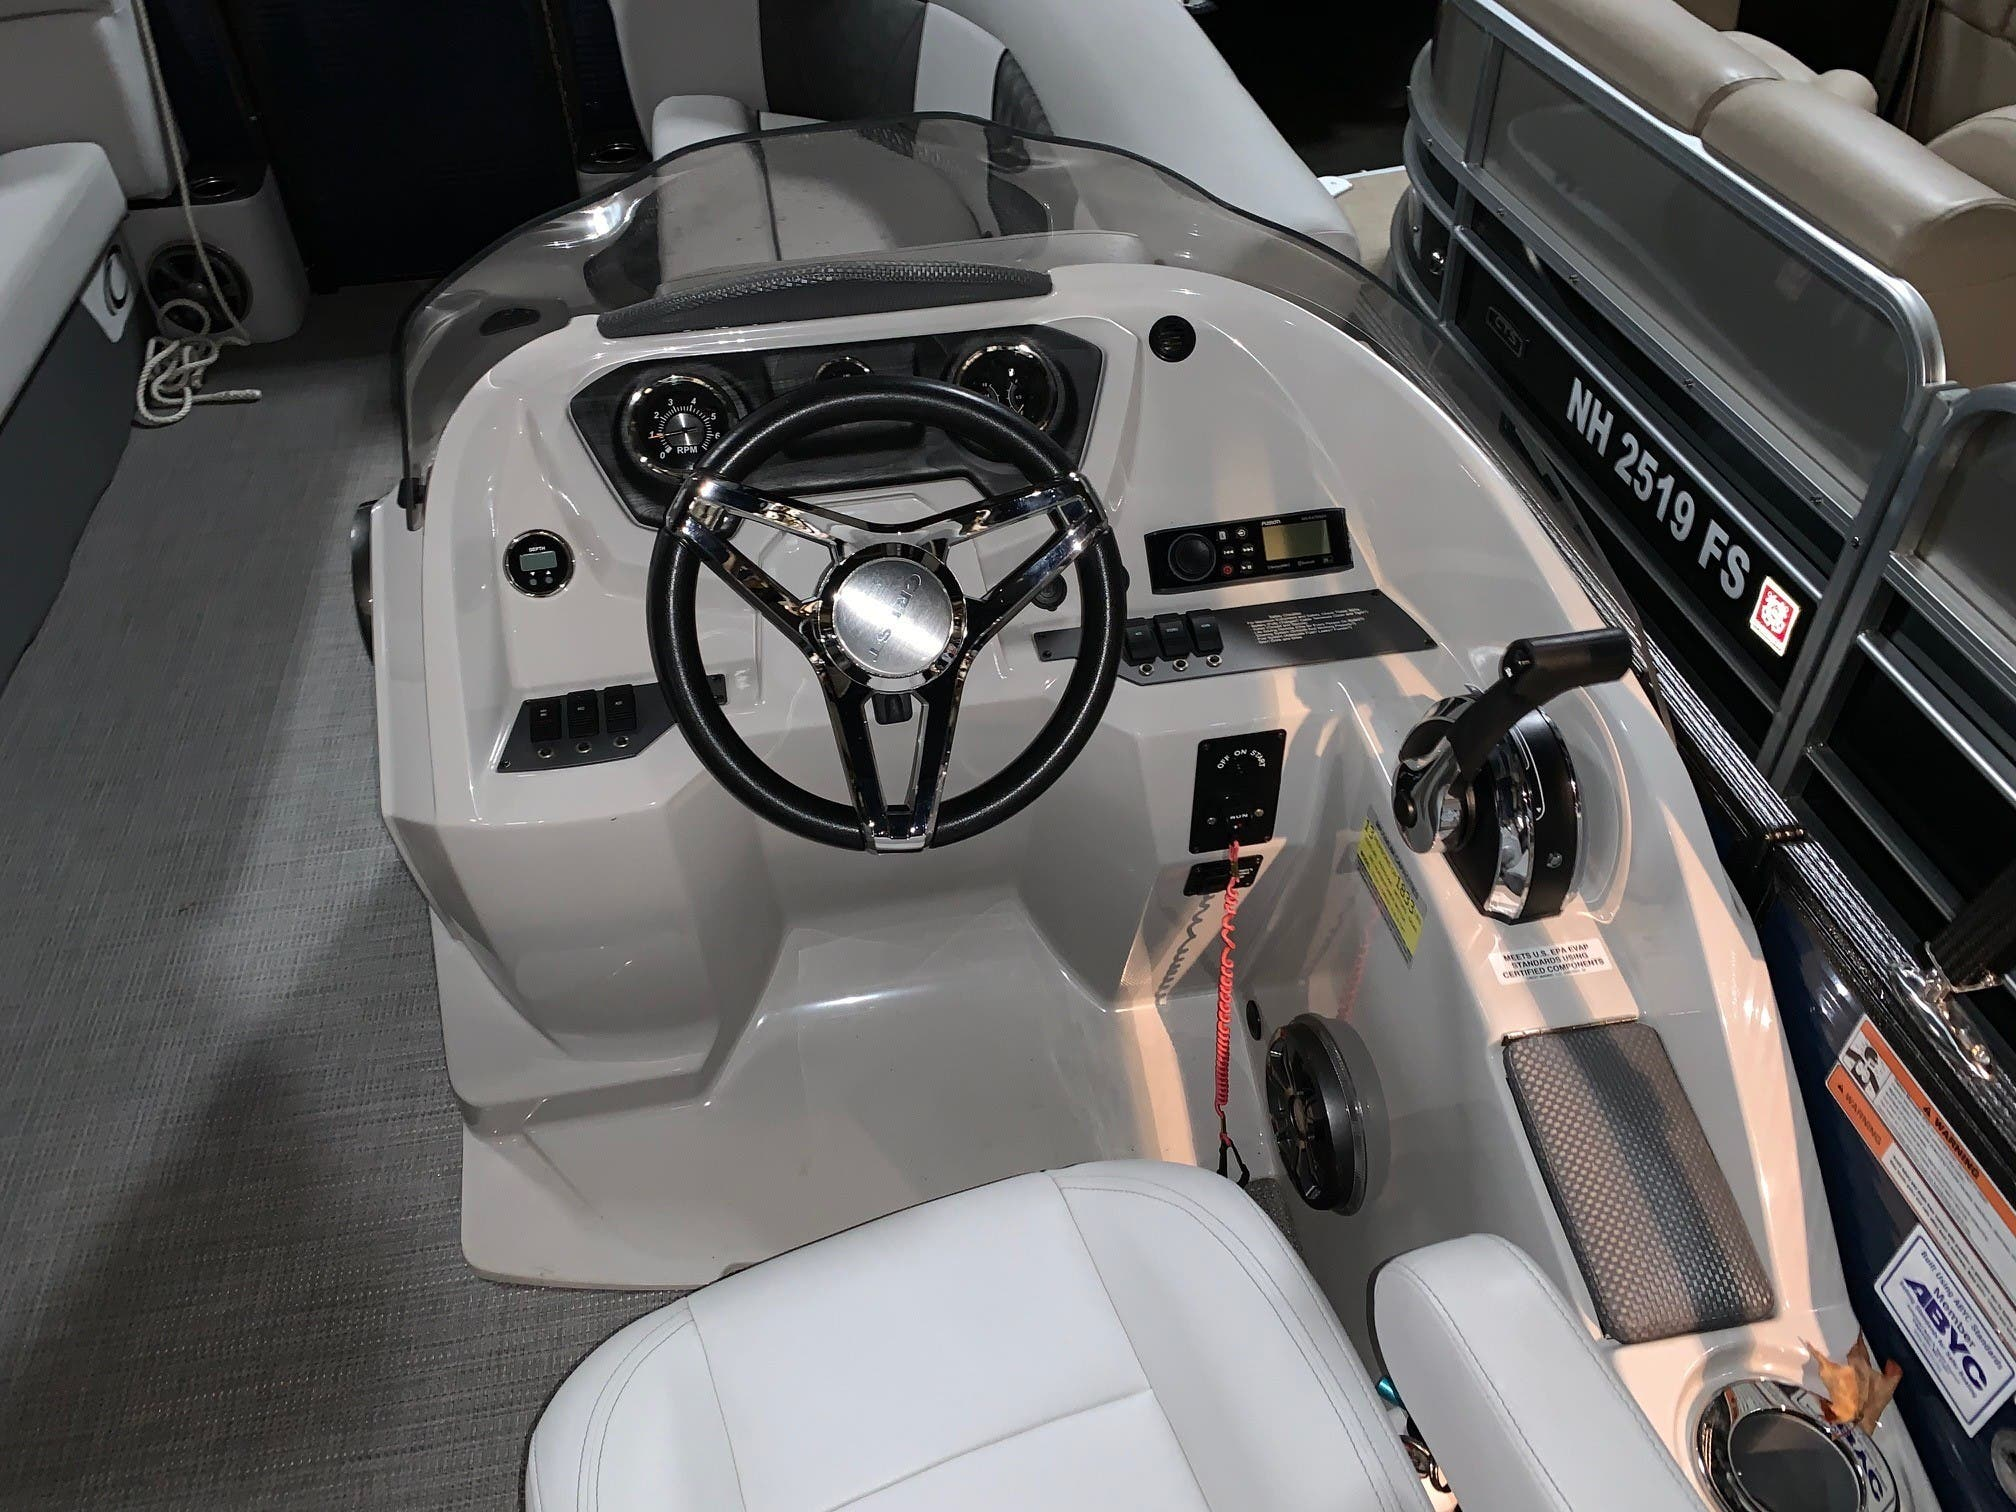 2019 Crest boat for sale, model of the boat is II 220 SLS & Image # 5 of 9